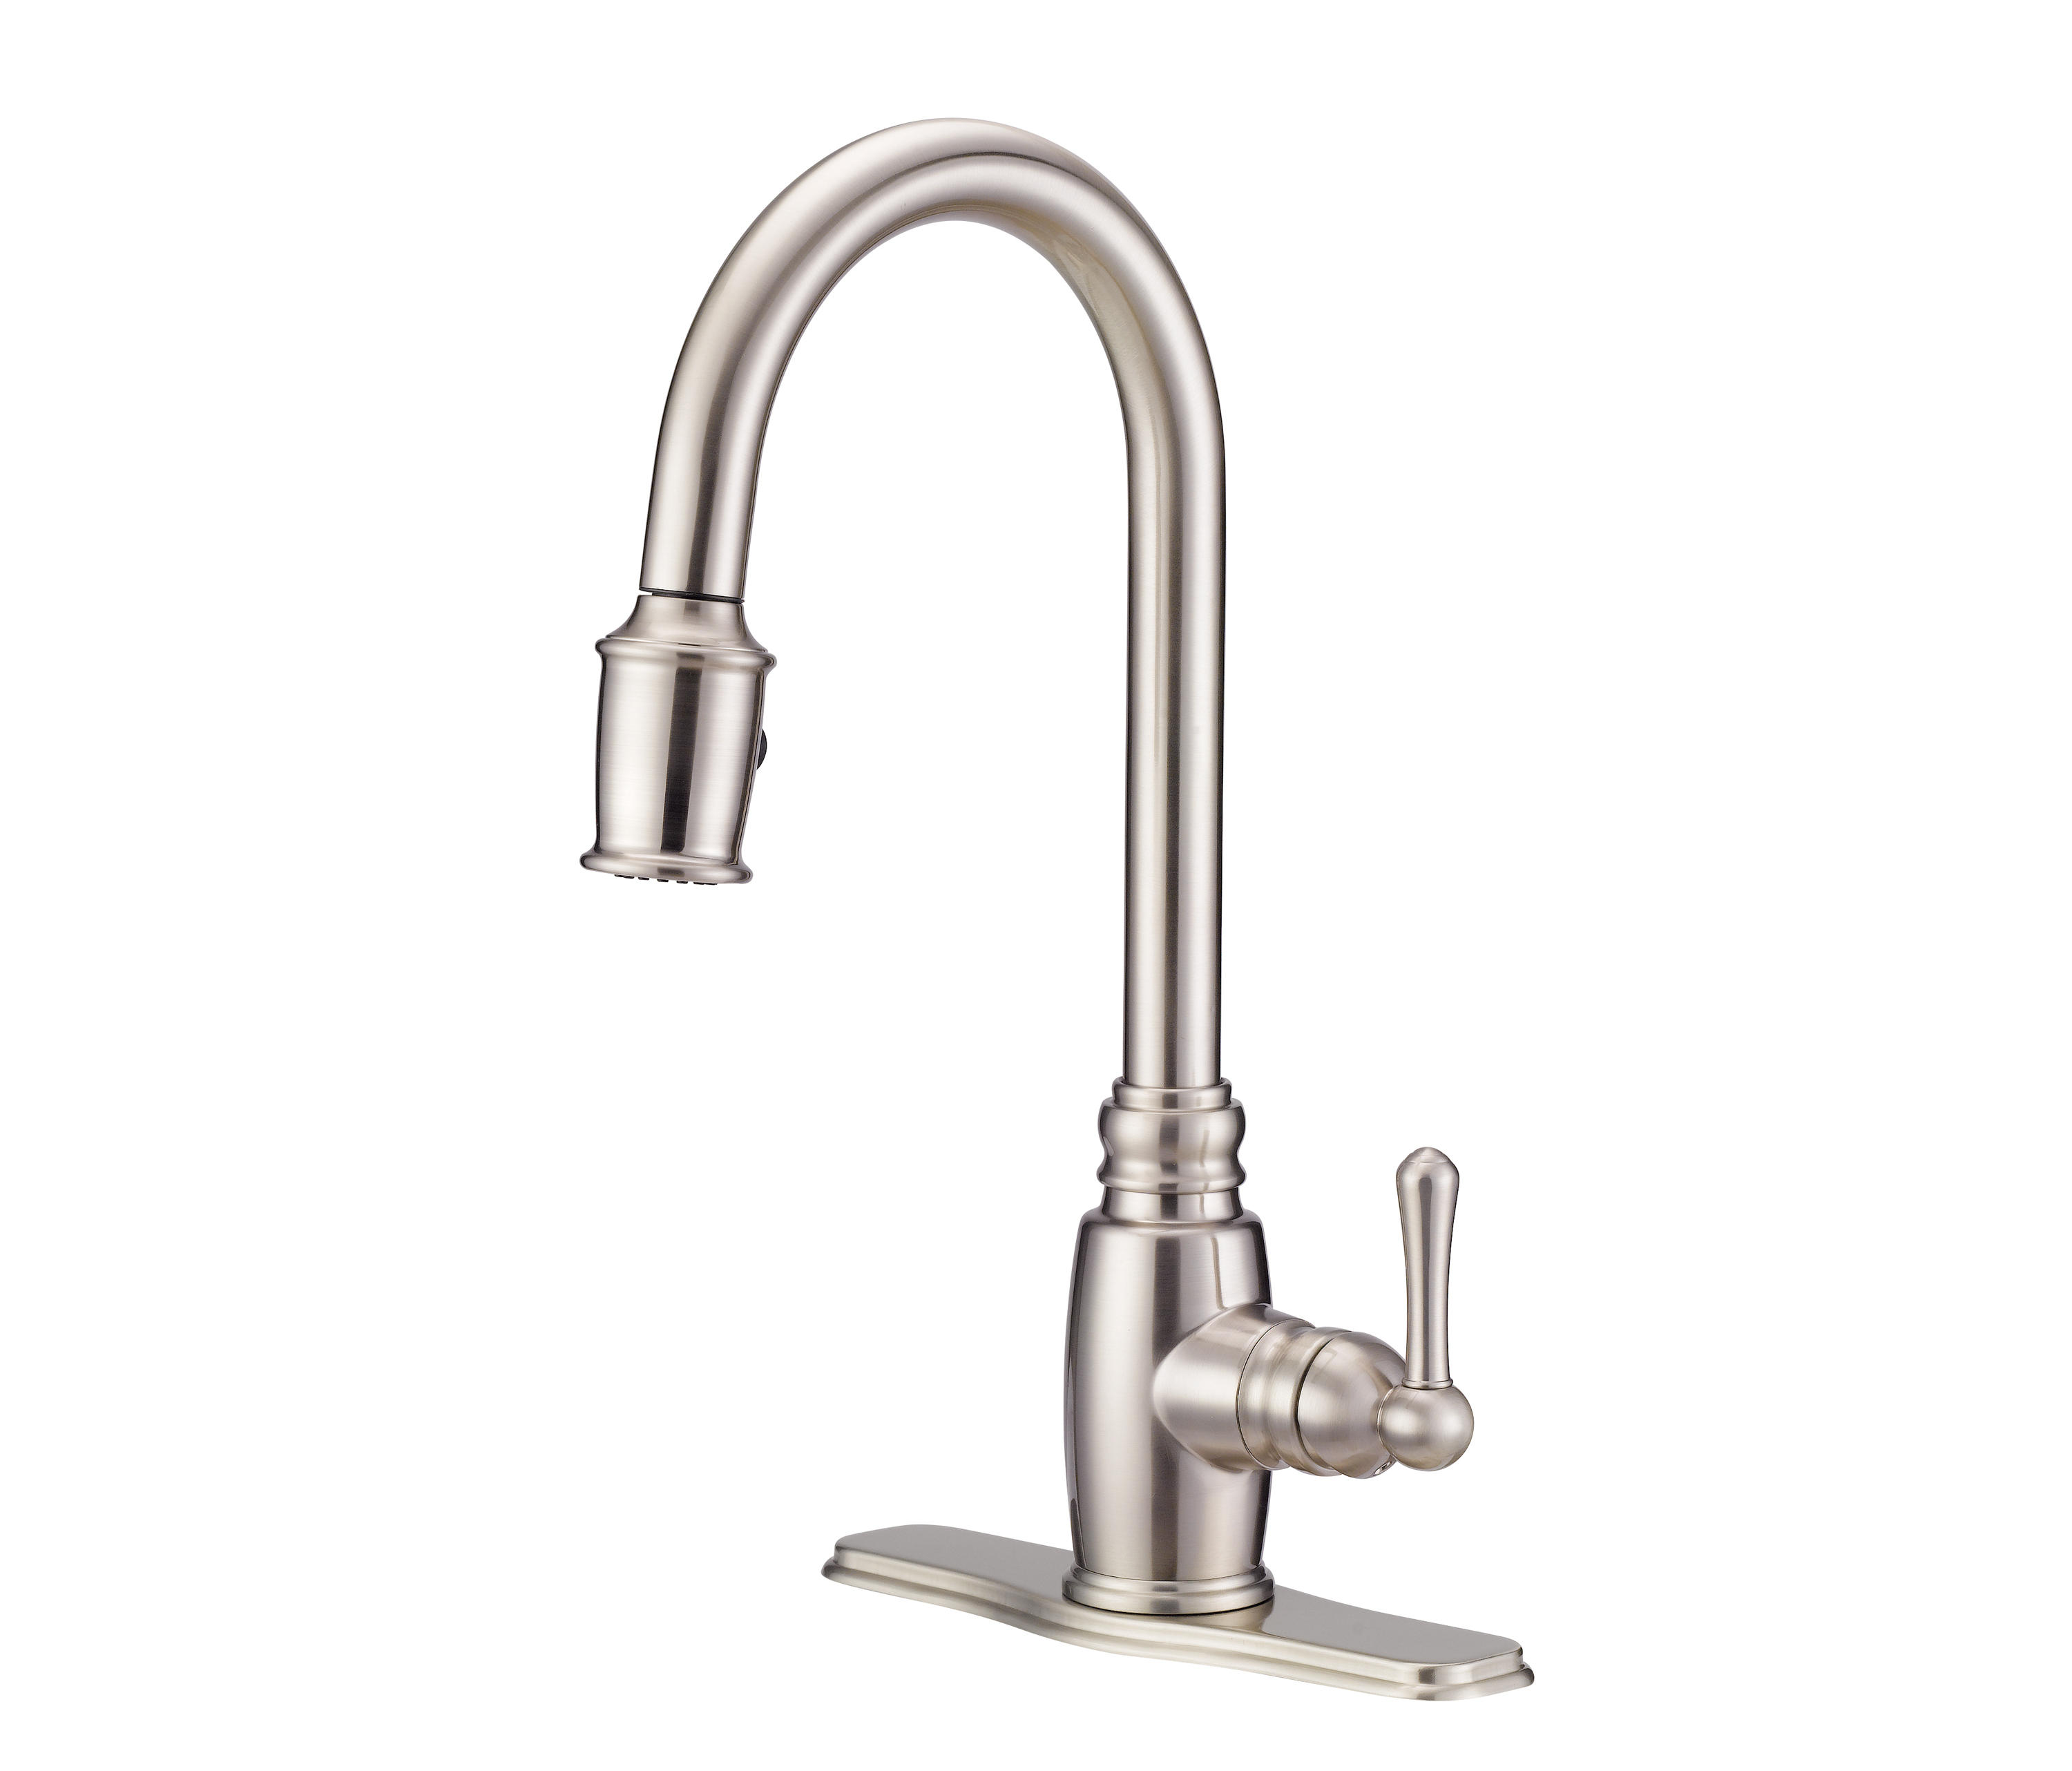 danze opulence kitchen faucet valance for window pull down taps from by